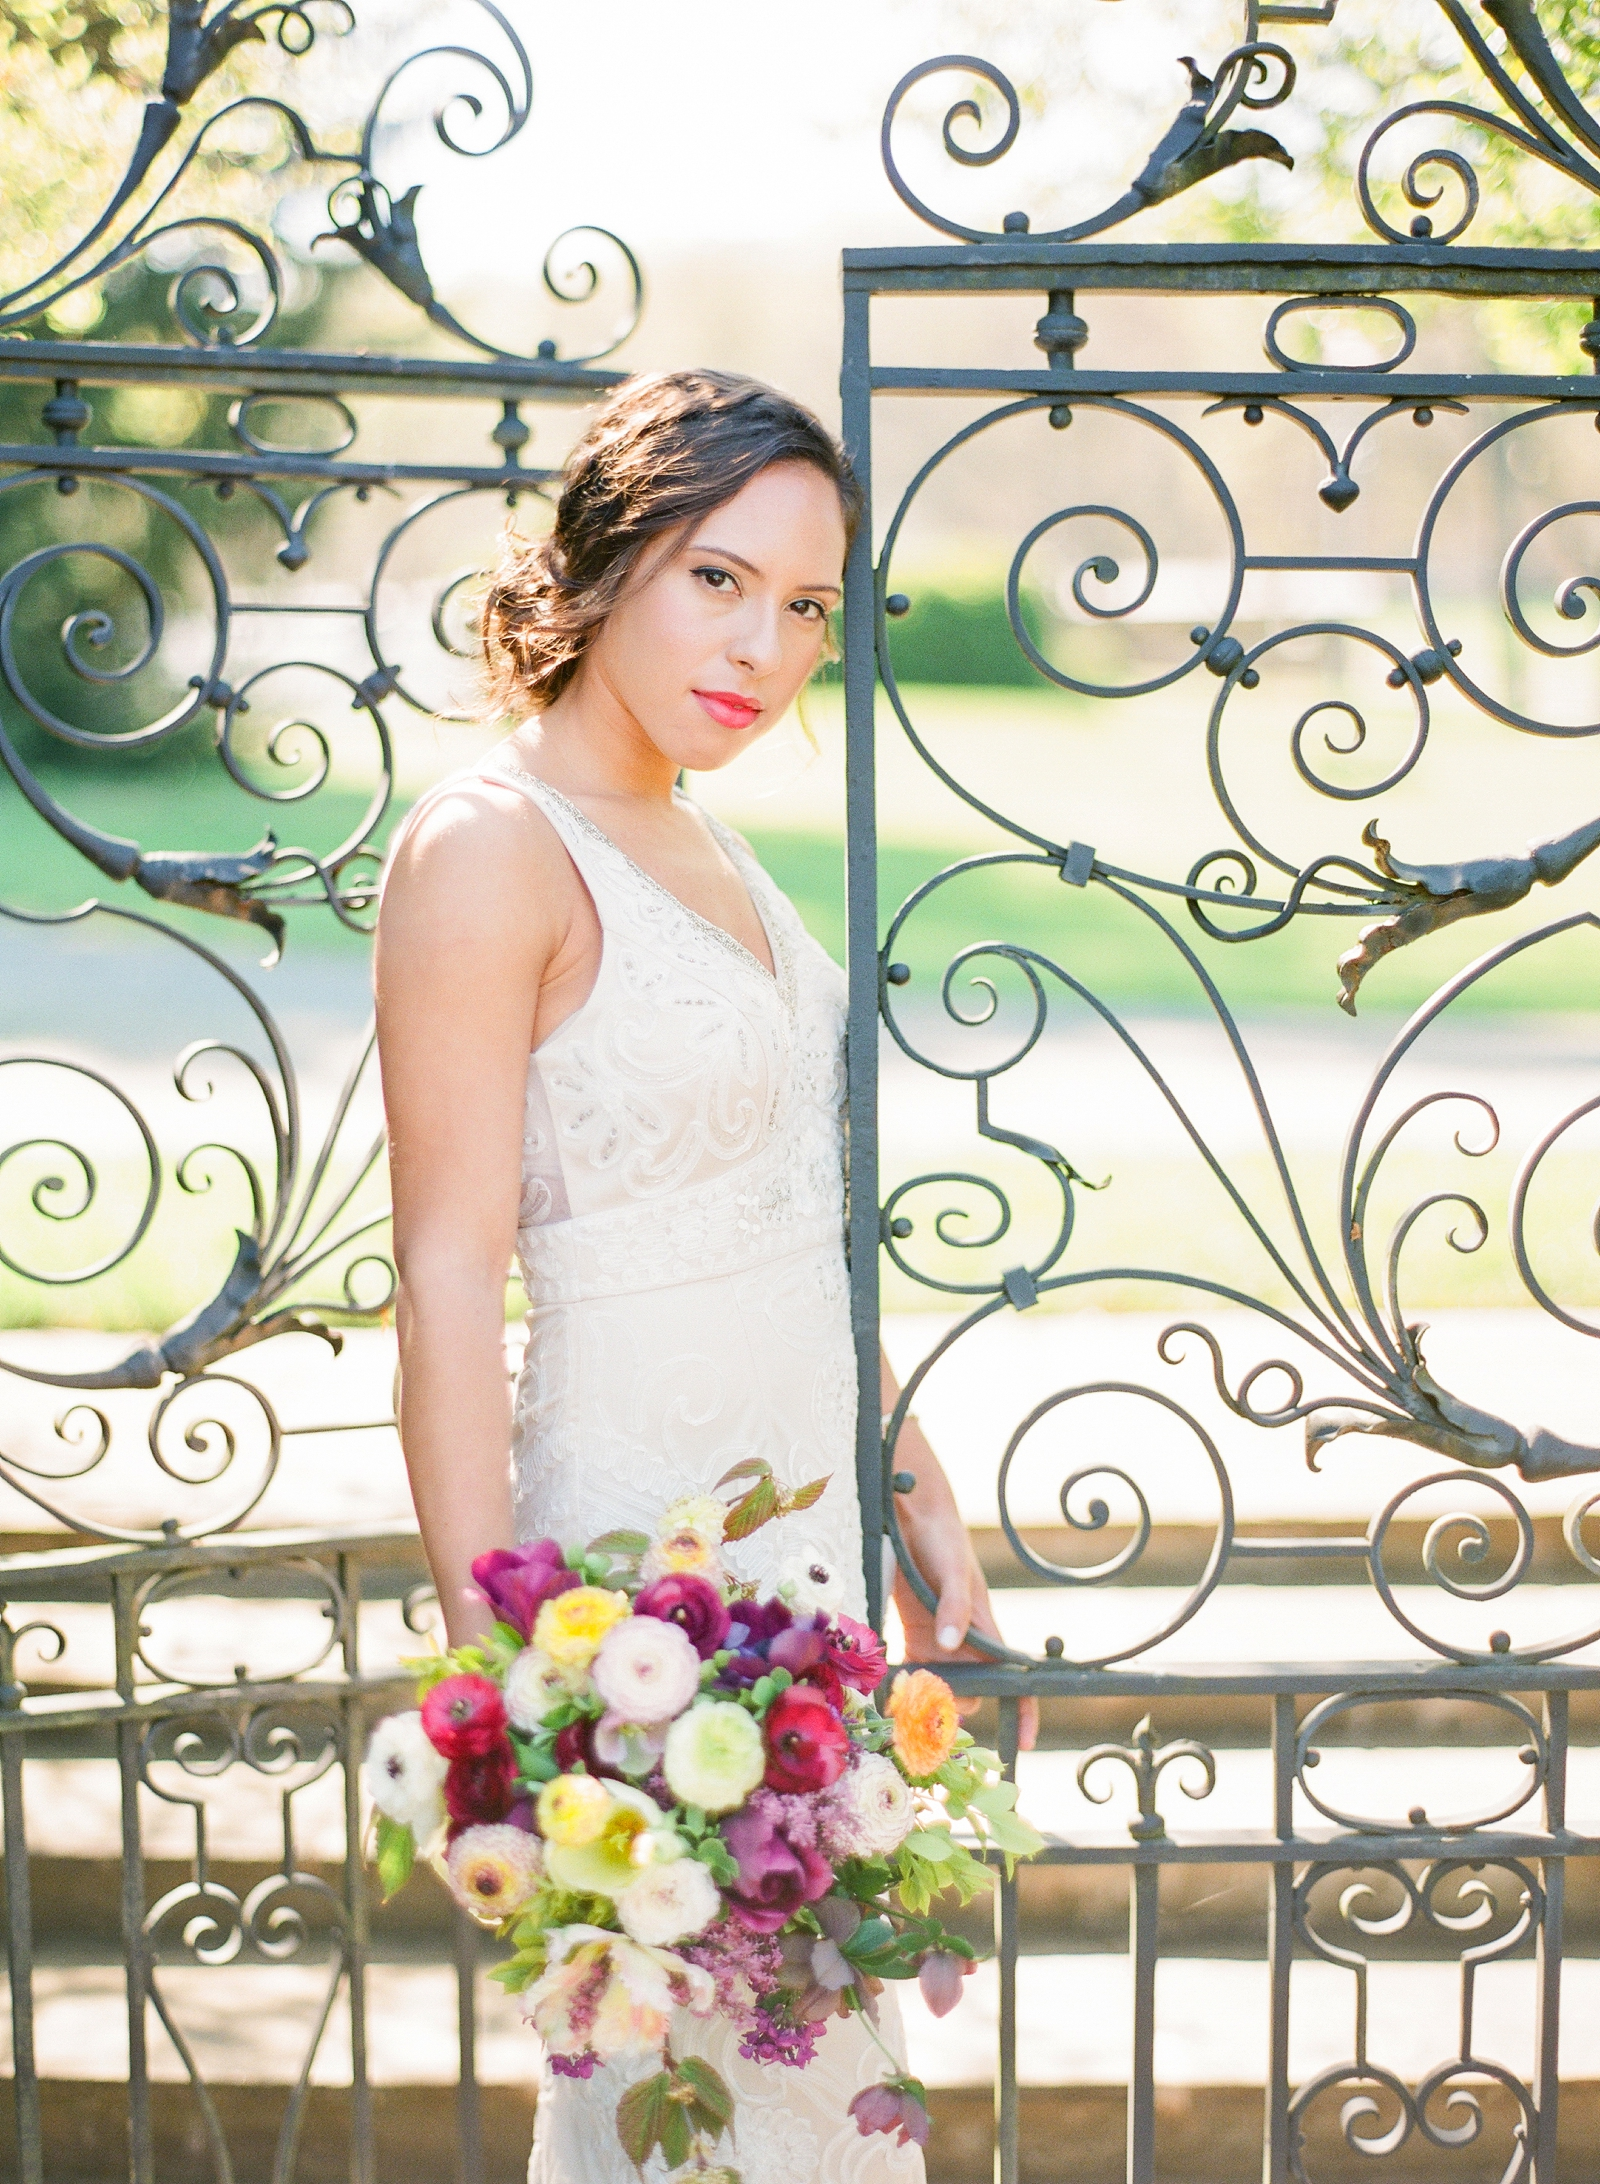 ashlee-virginia-shoot-jodiandkurtphoto_107.JPG